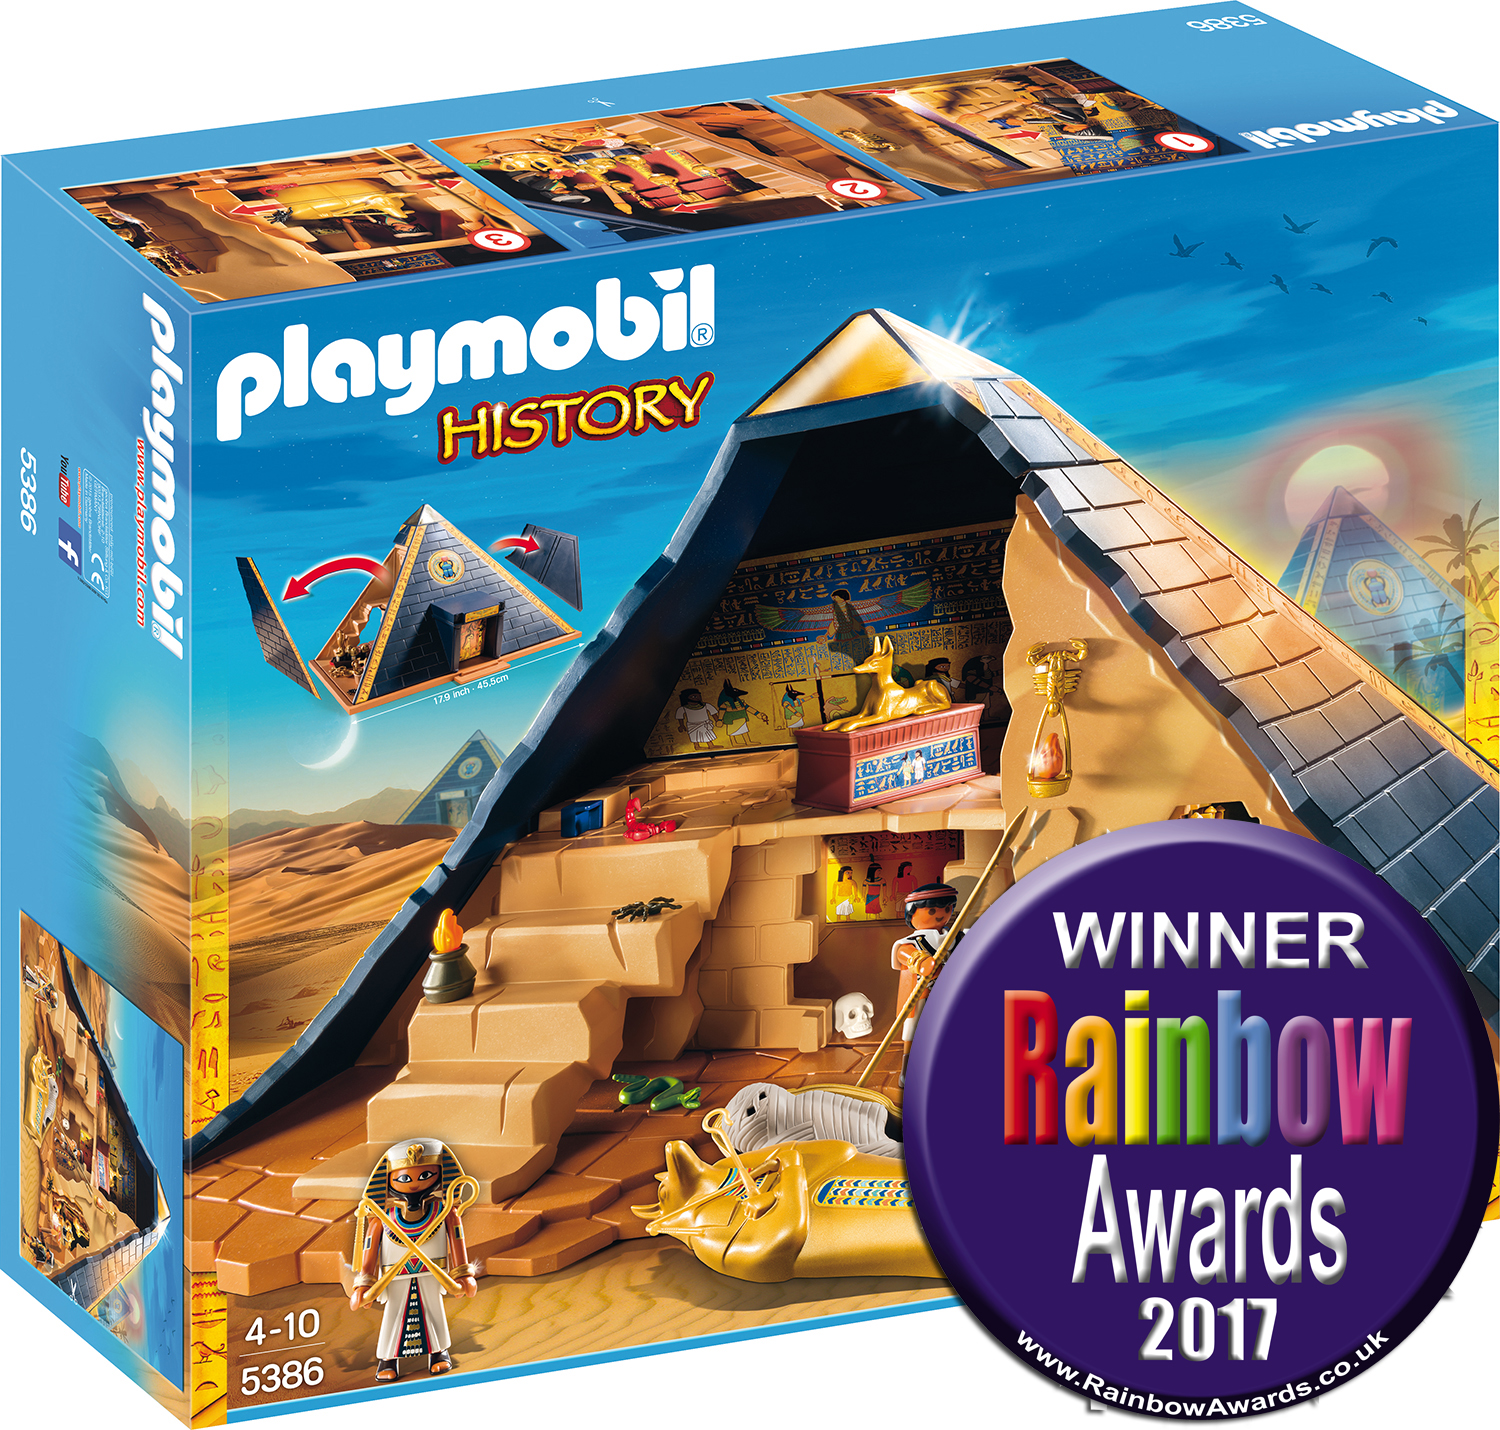 Rainbow Toy Awards The Awards for the UK Toy Industry